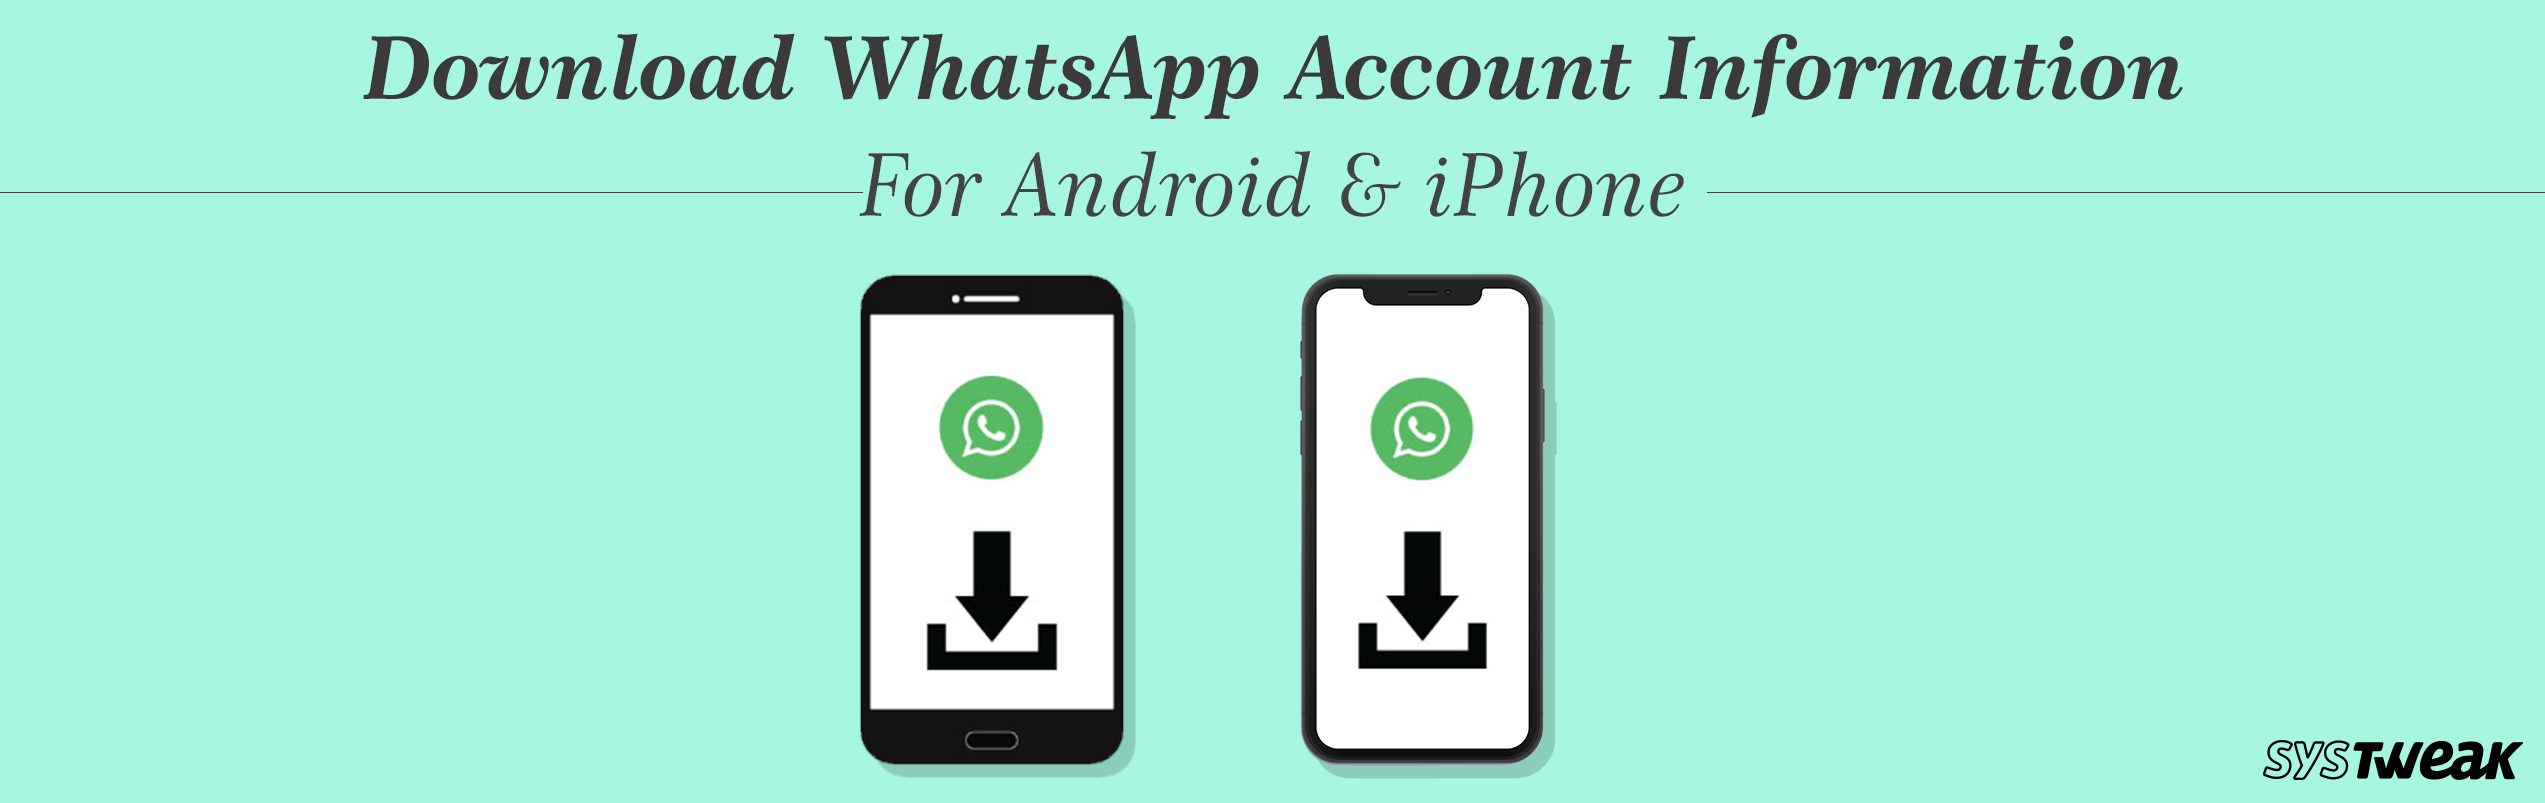 Here's How To Download WhatsApp Account Information For Android & iPhone